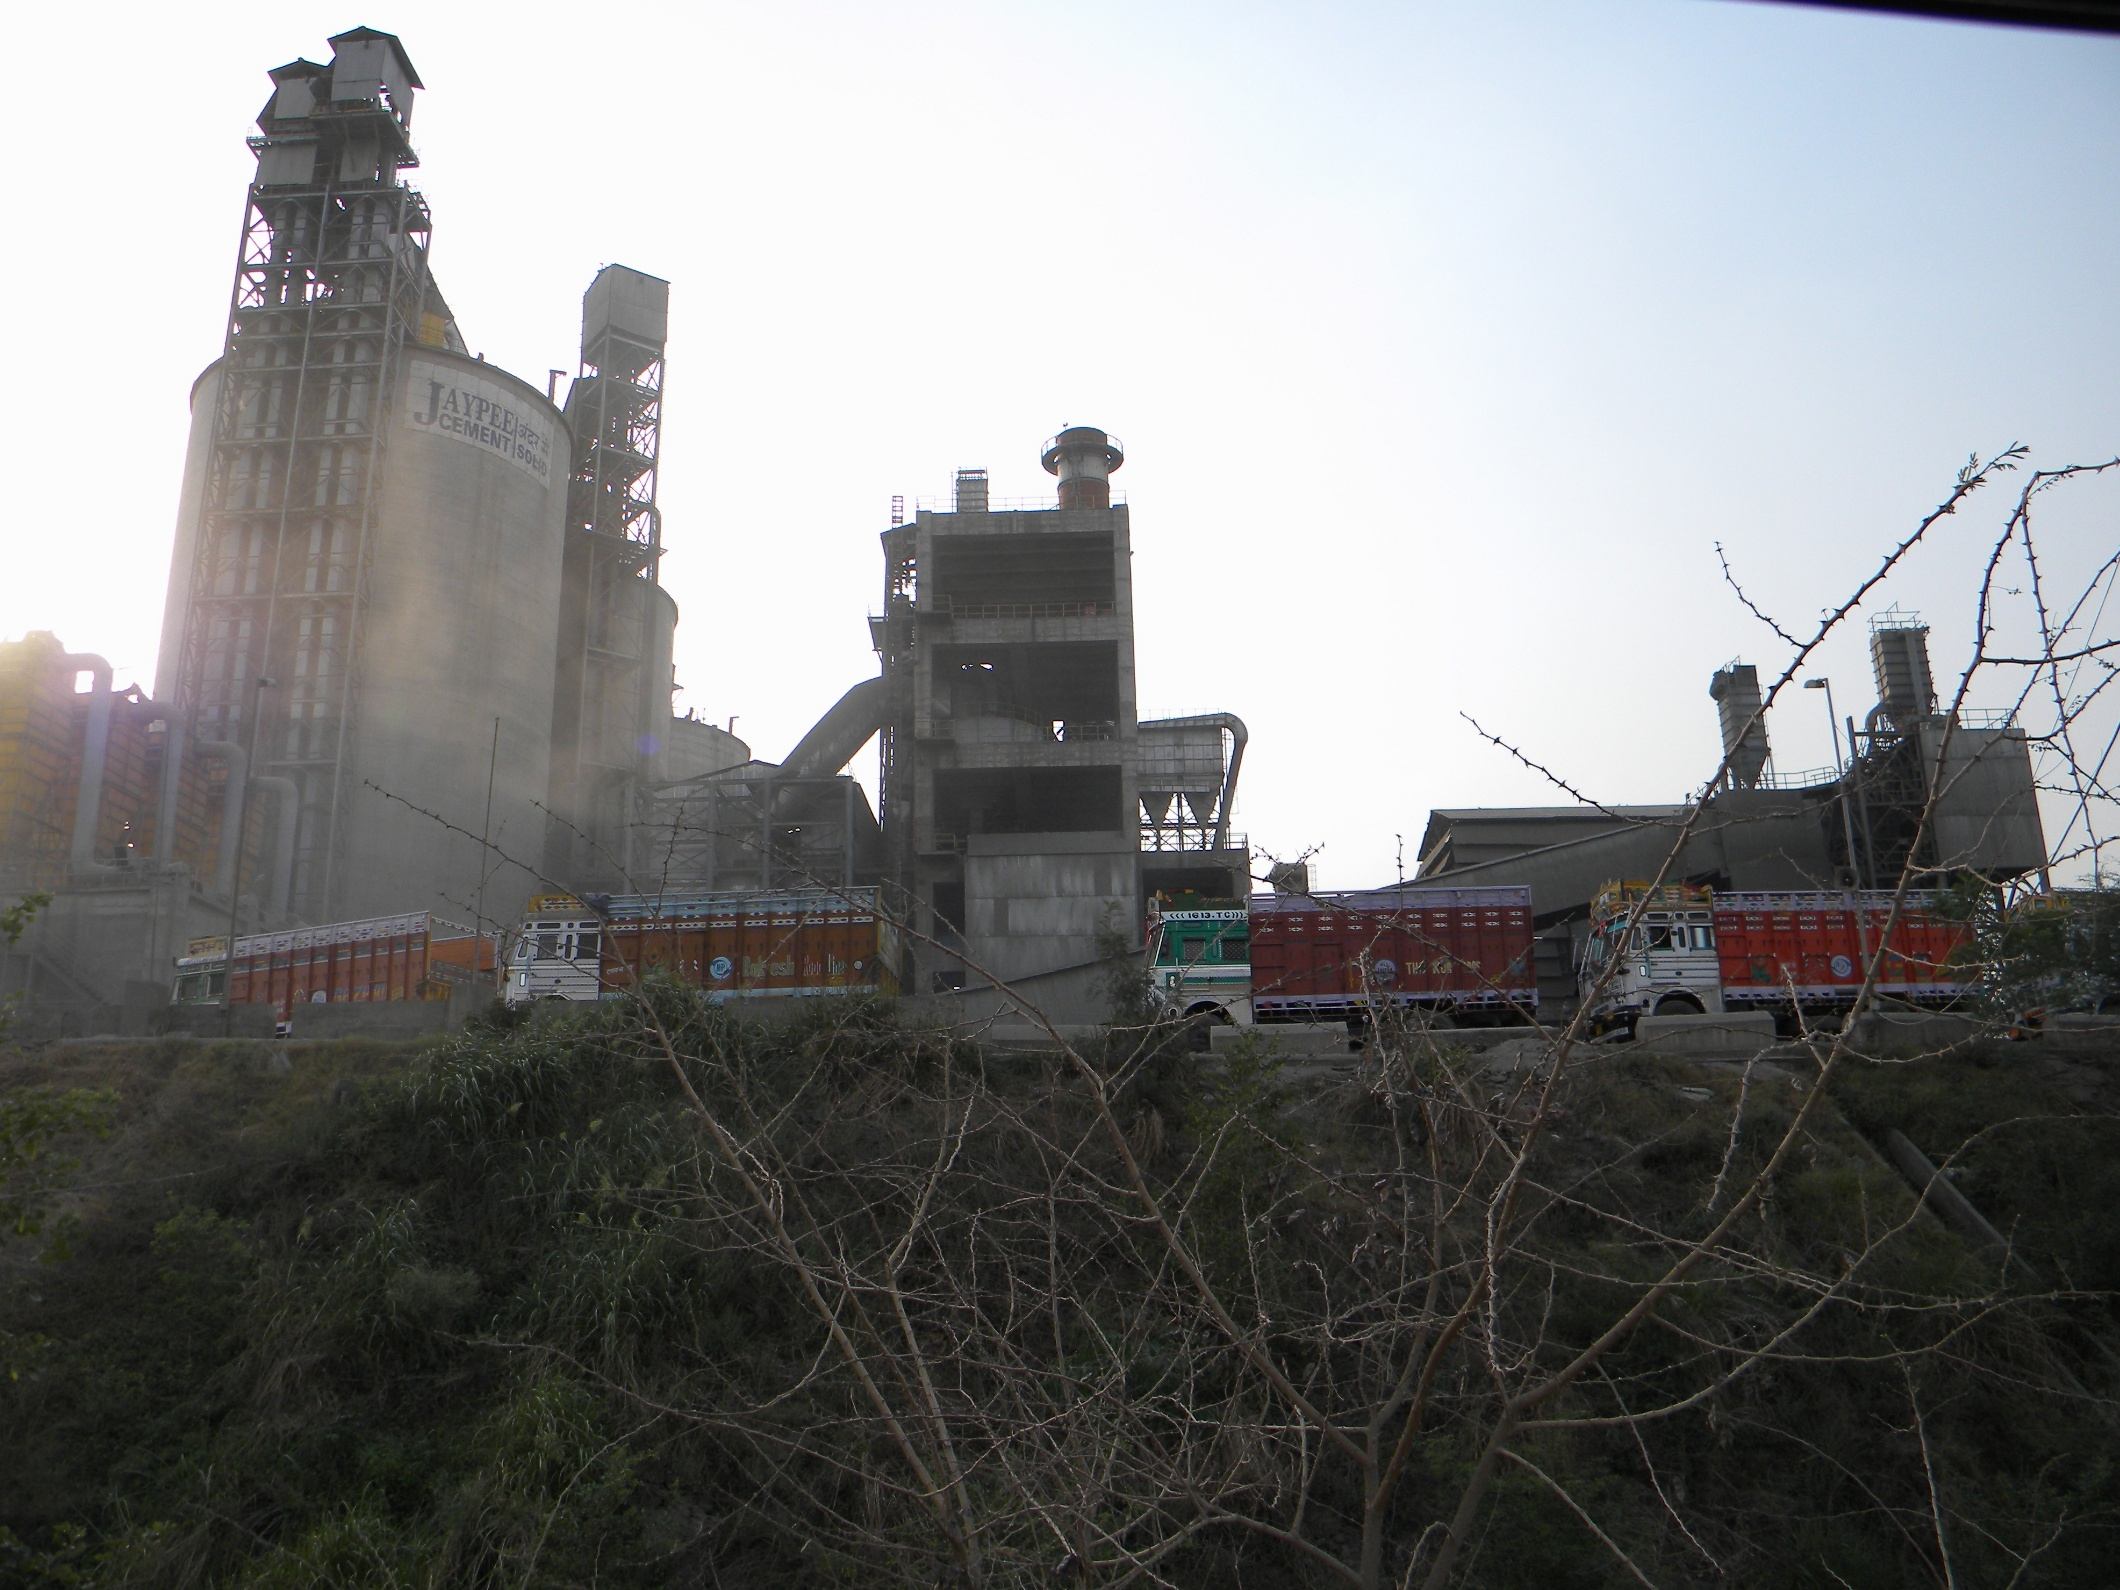 Jaypee Cement Plant at Nalagarh